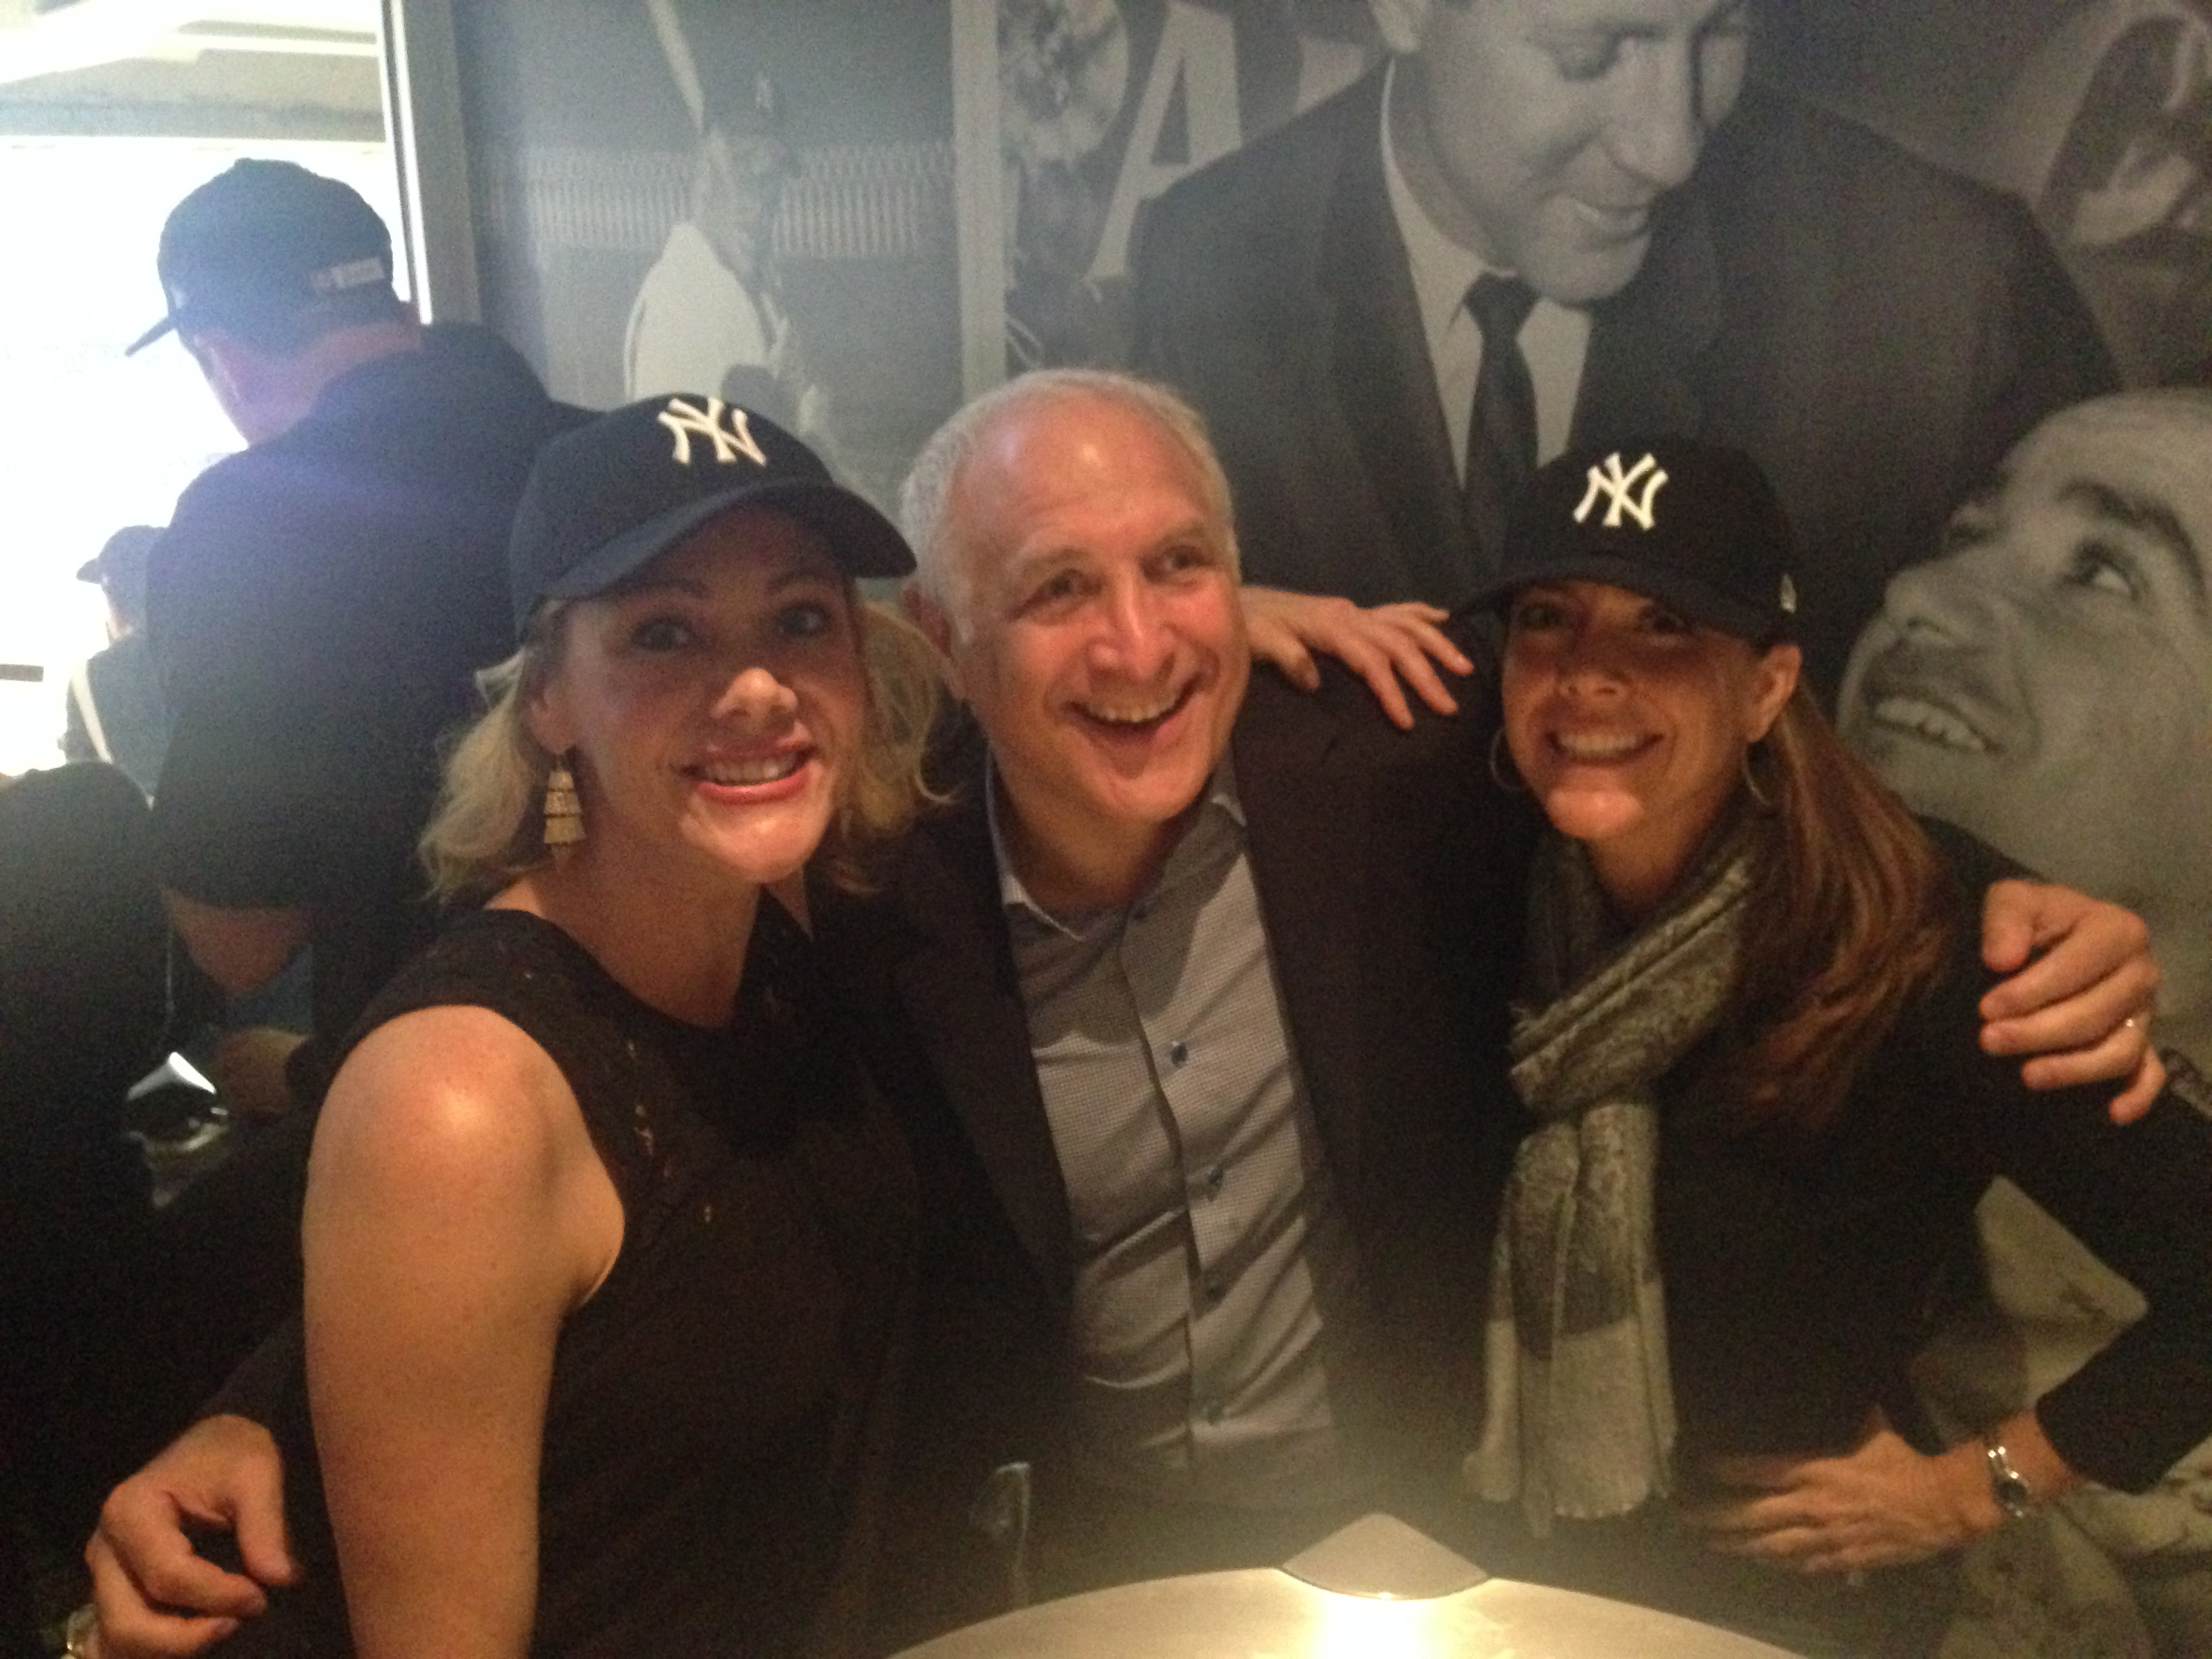 Yankees Game with Bonnie Bruderer, Brandon Steiner, and Terri Sjodin